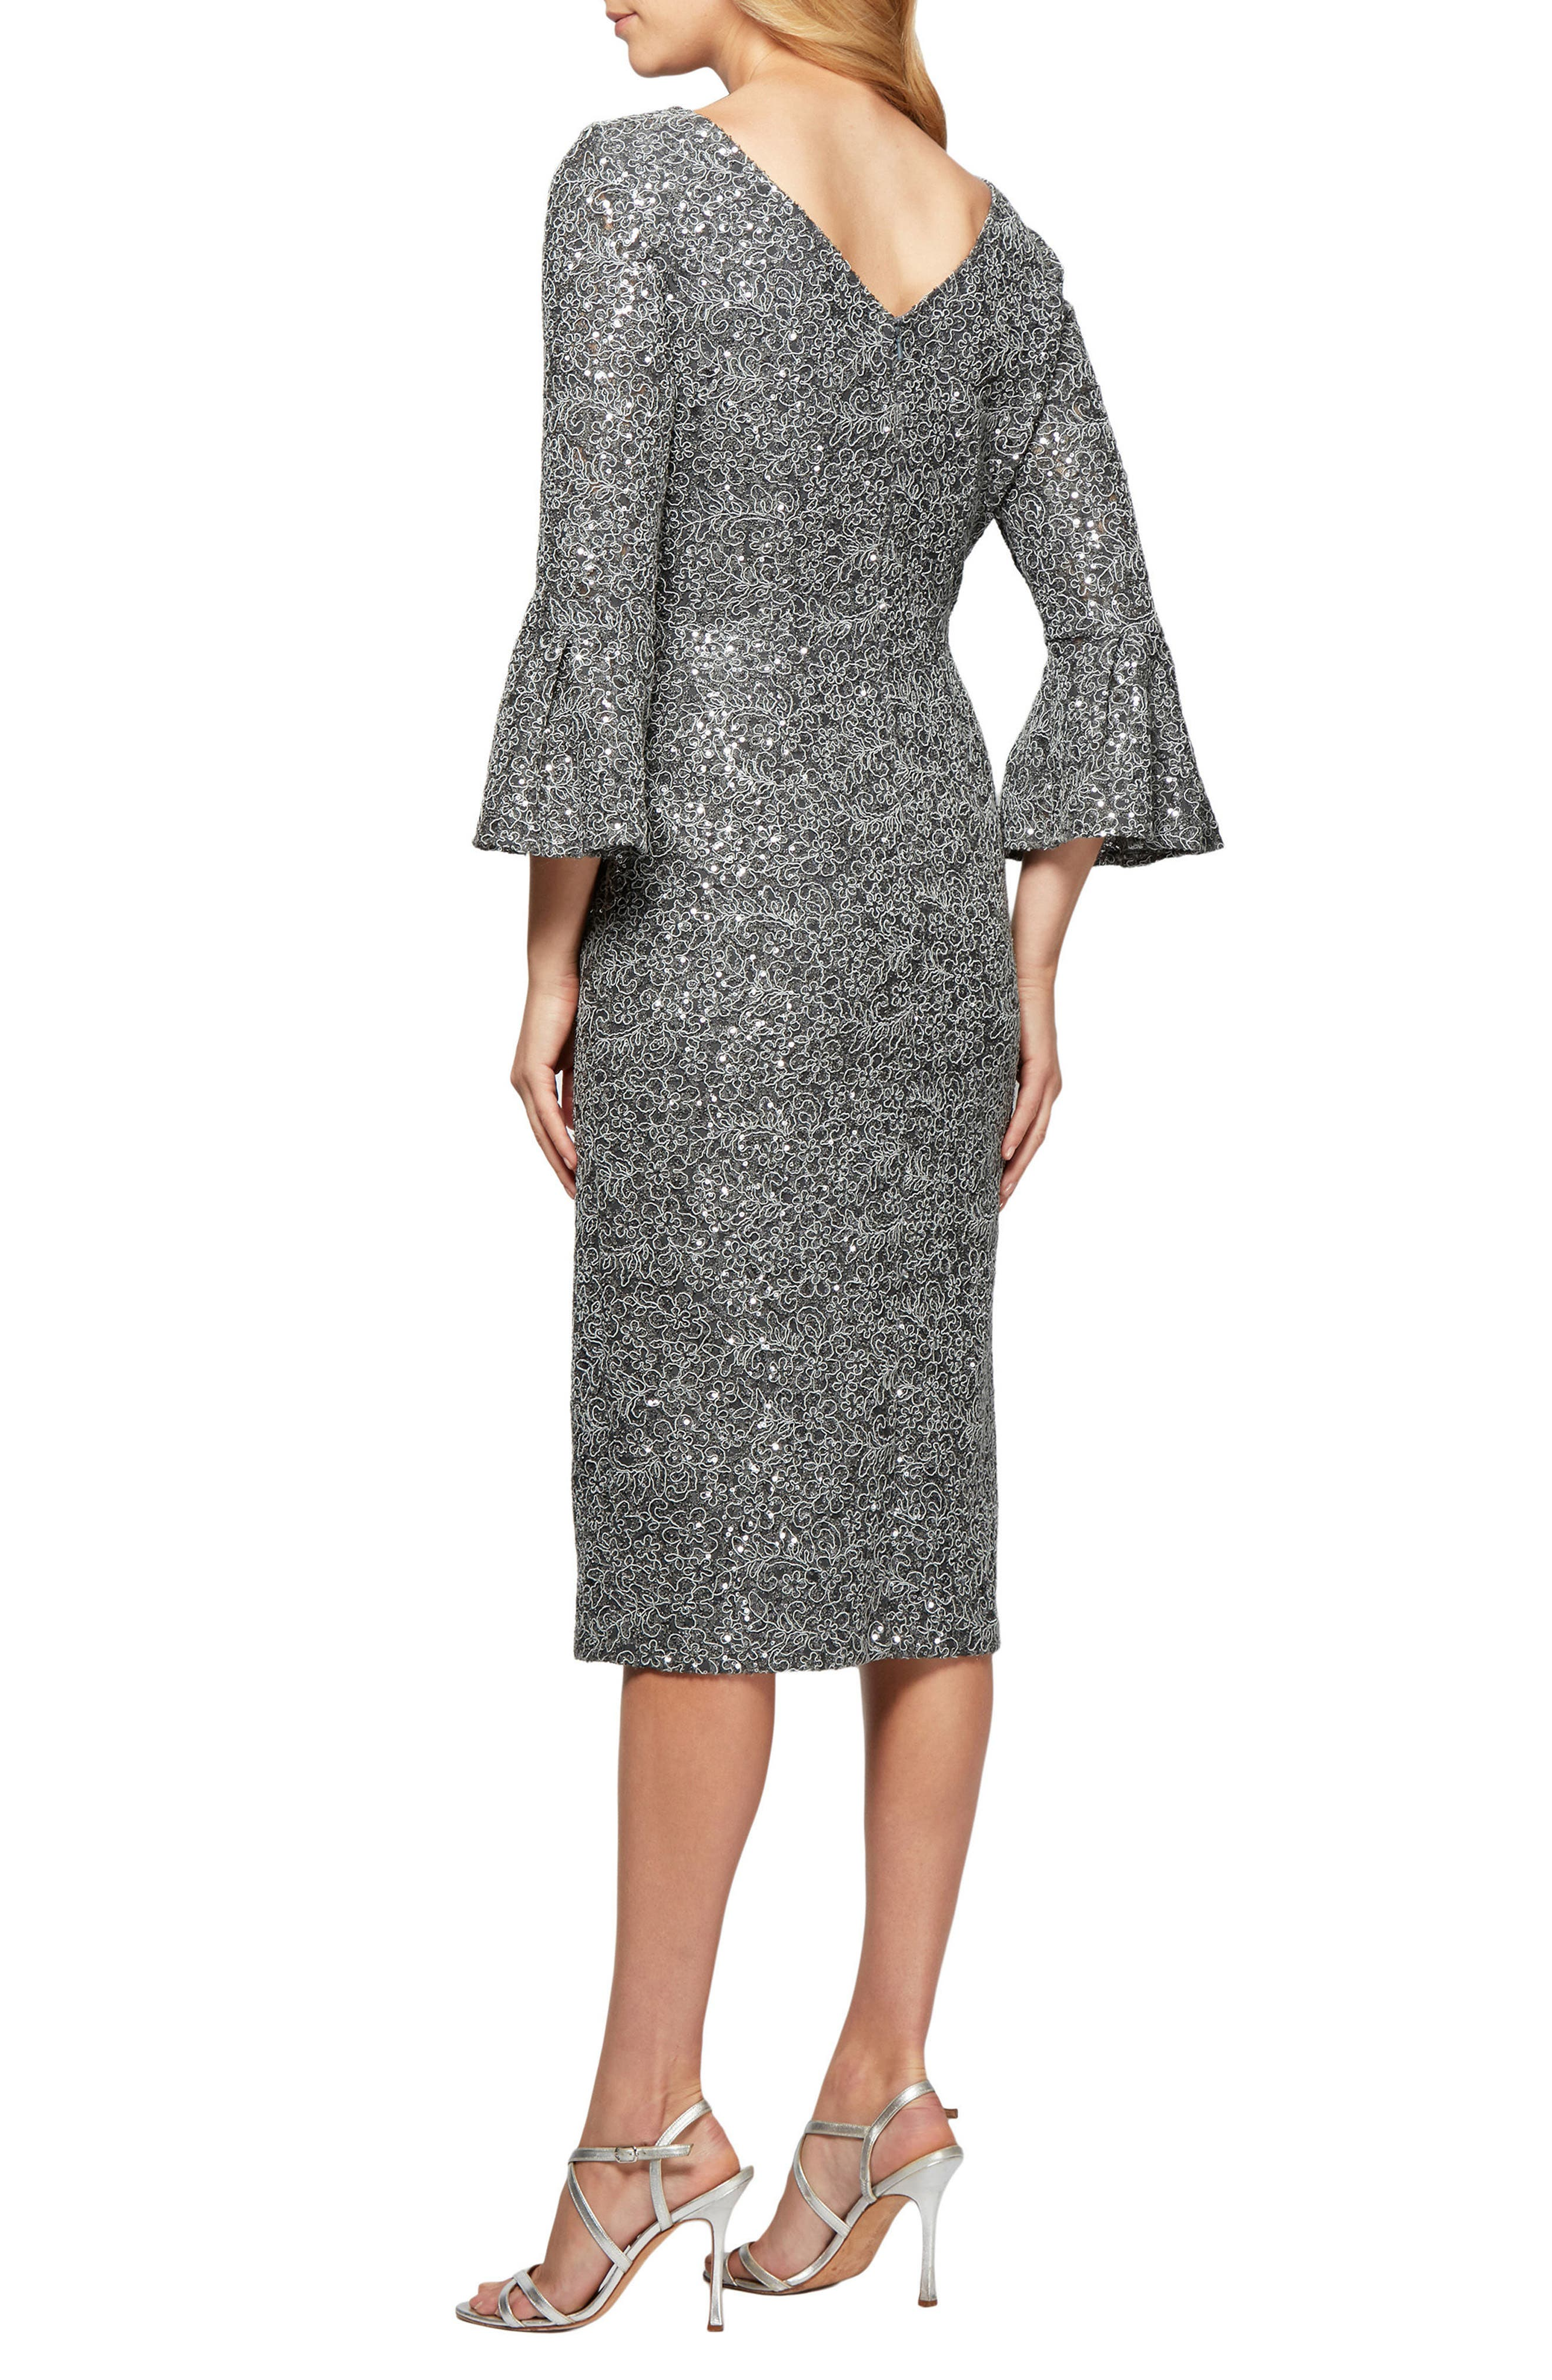 Embroidered Lace Shift Dress,                             Alternate thumbnail 2, color,                             Gunmetal